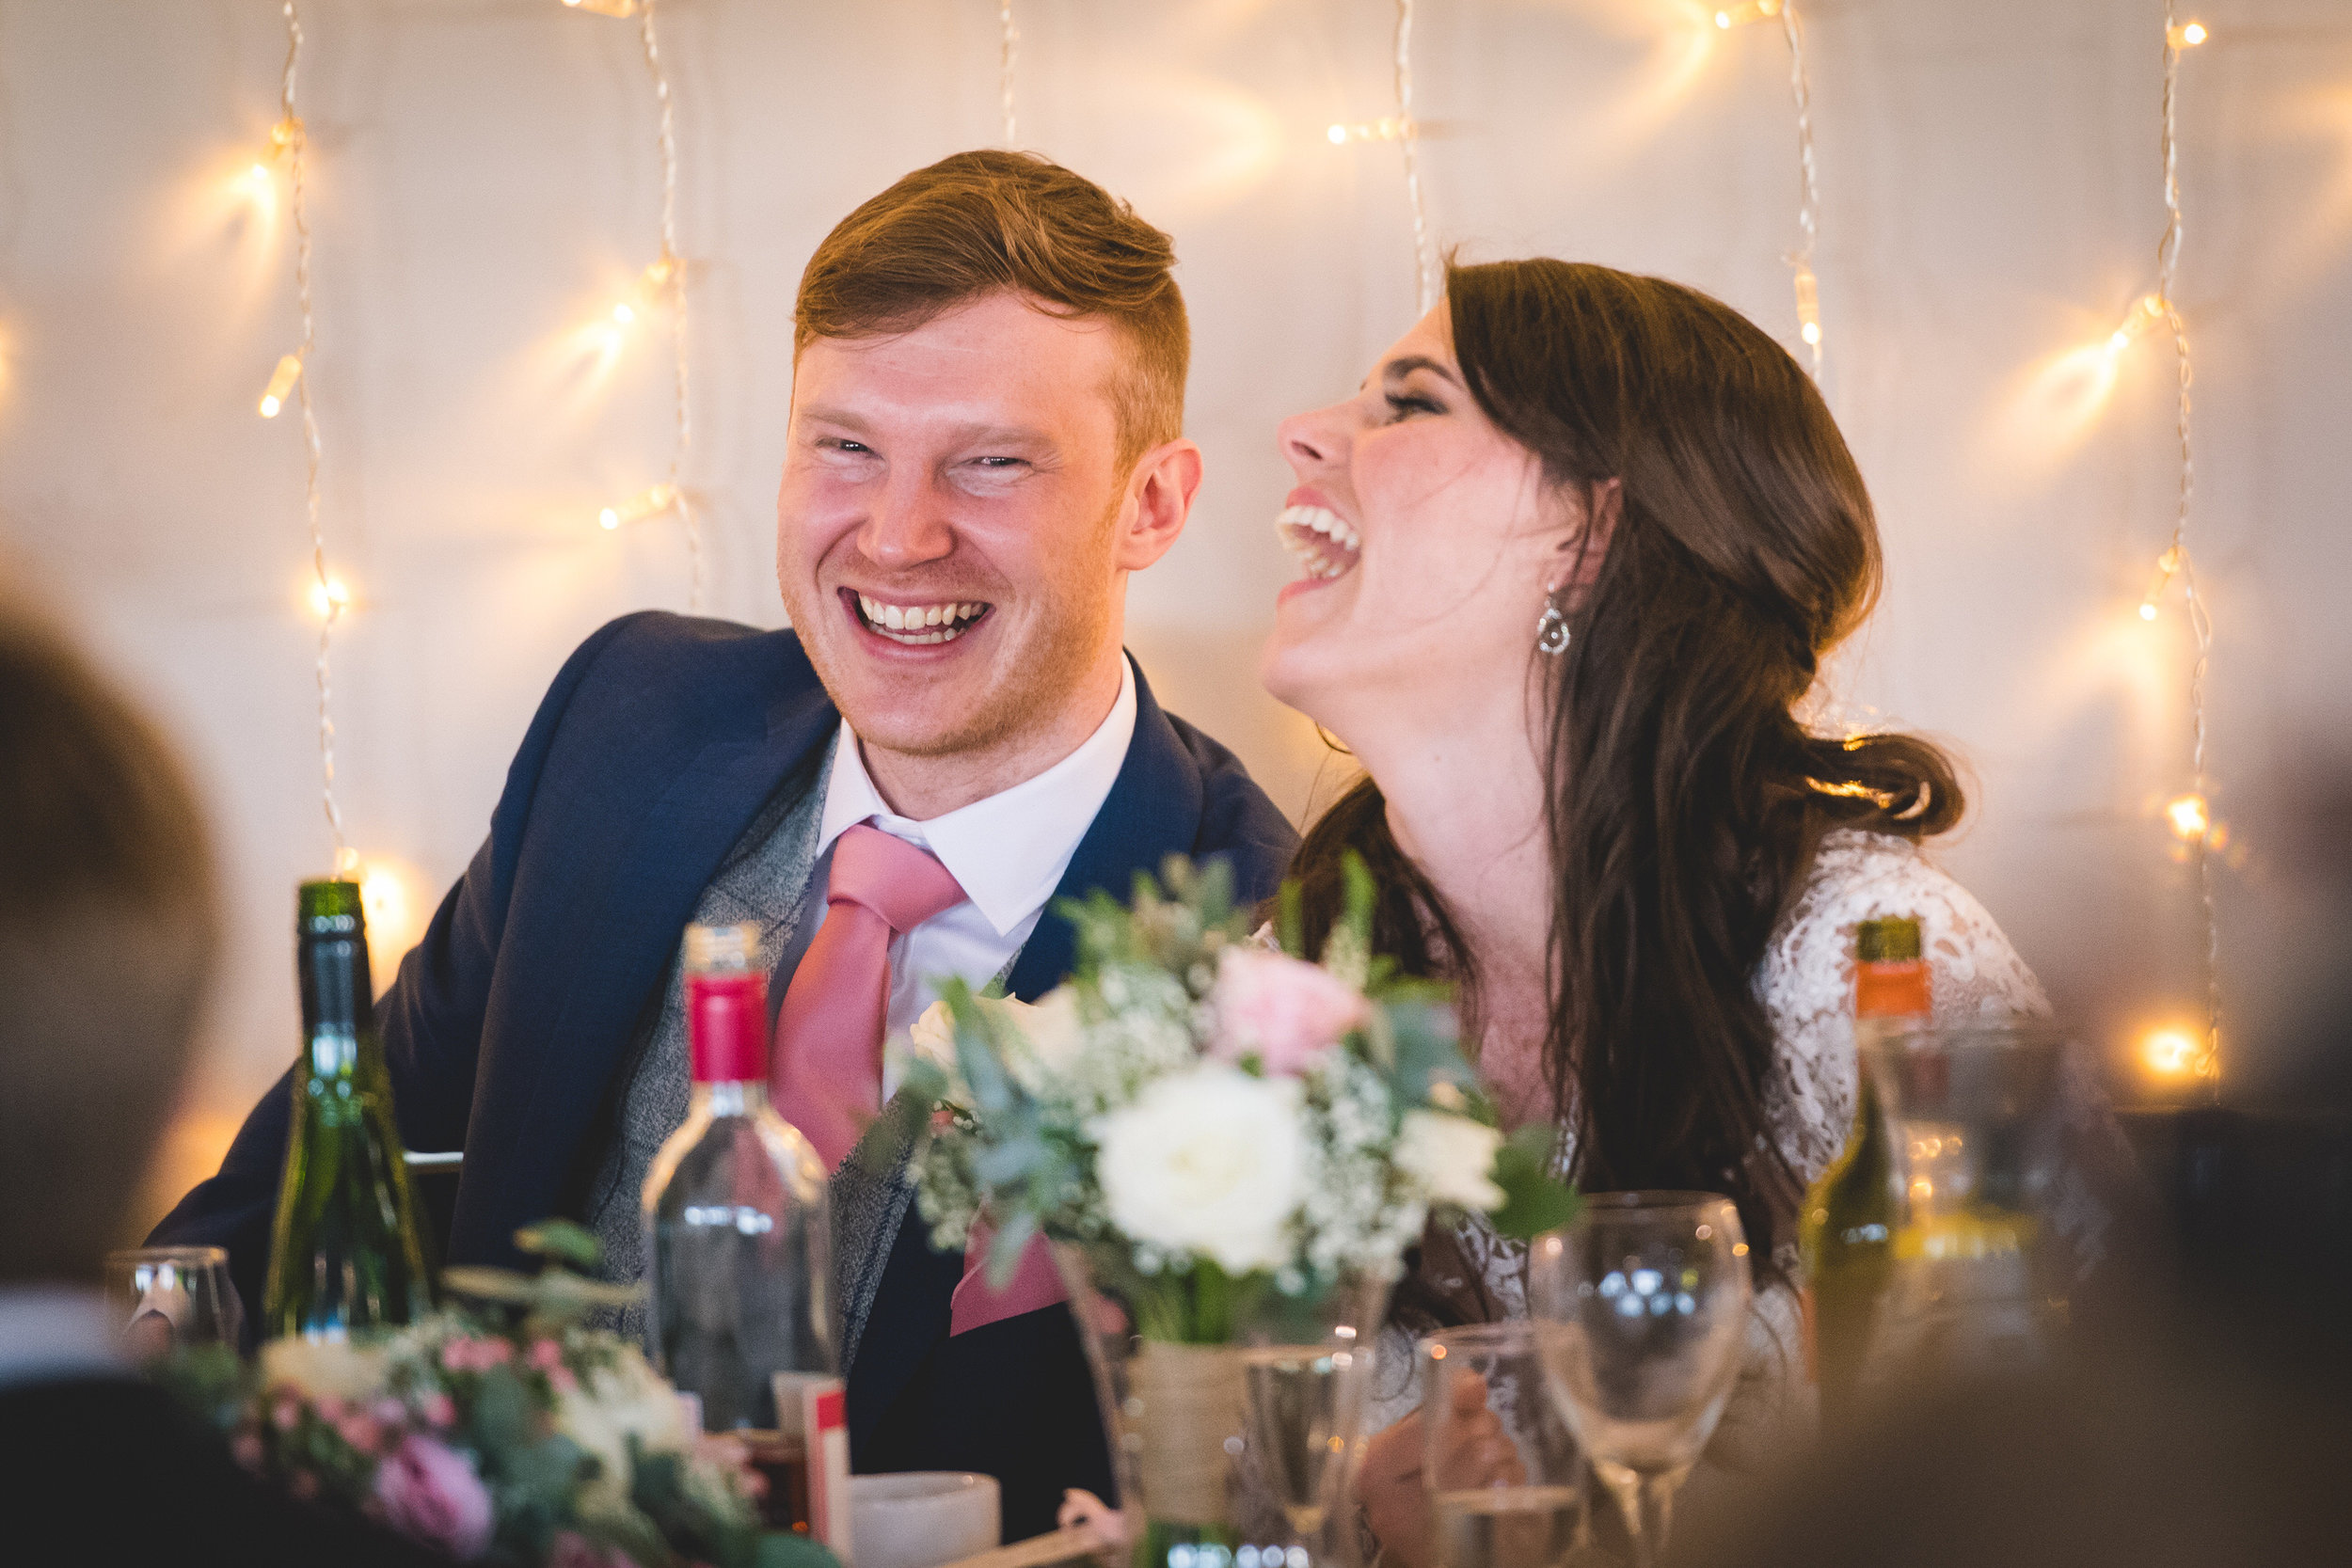 Laughter at The Yorkshire Wedding Barn